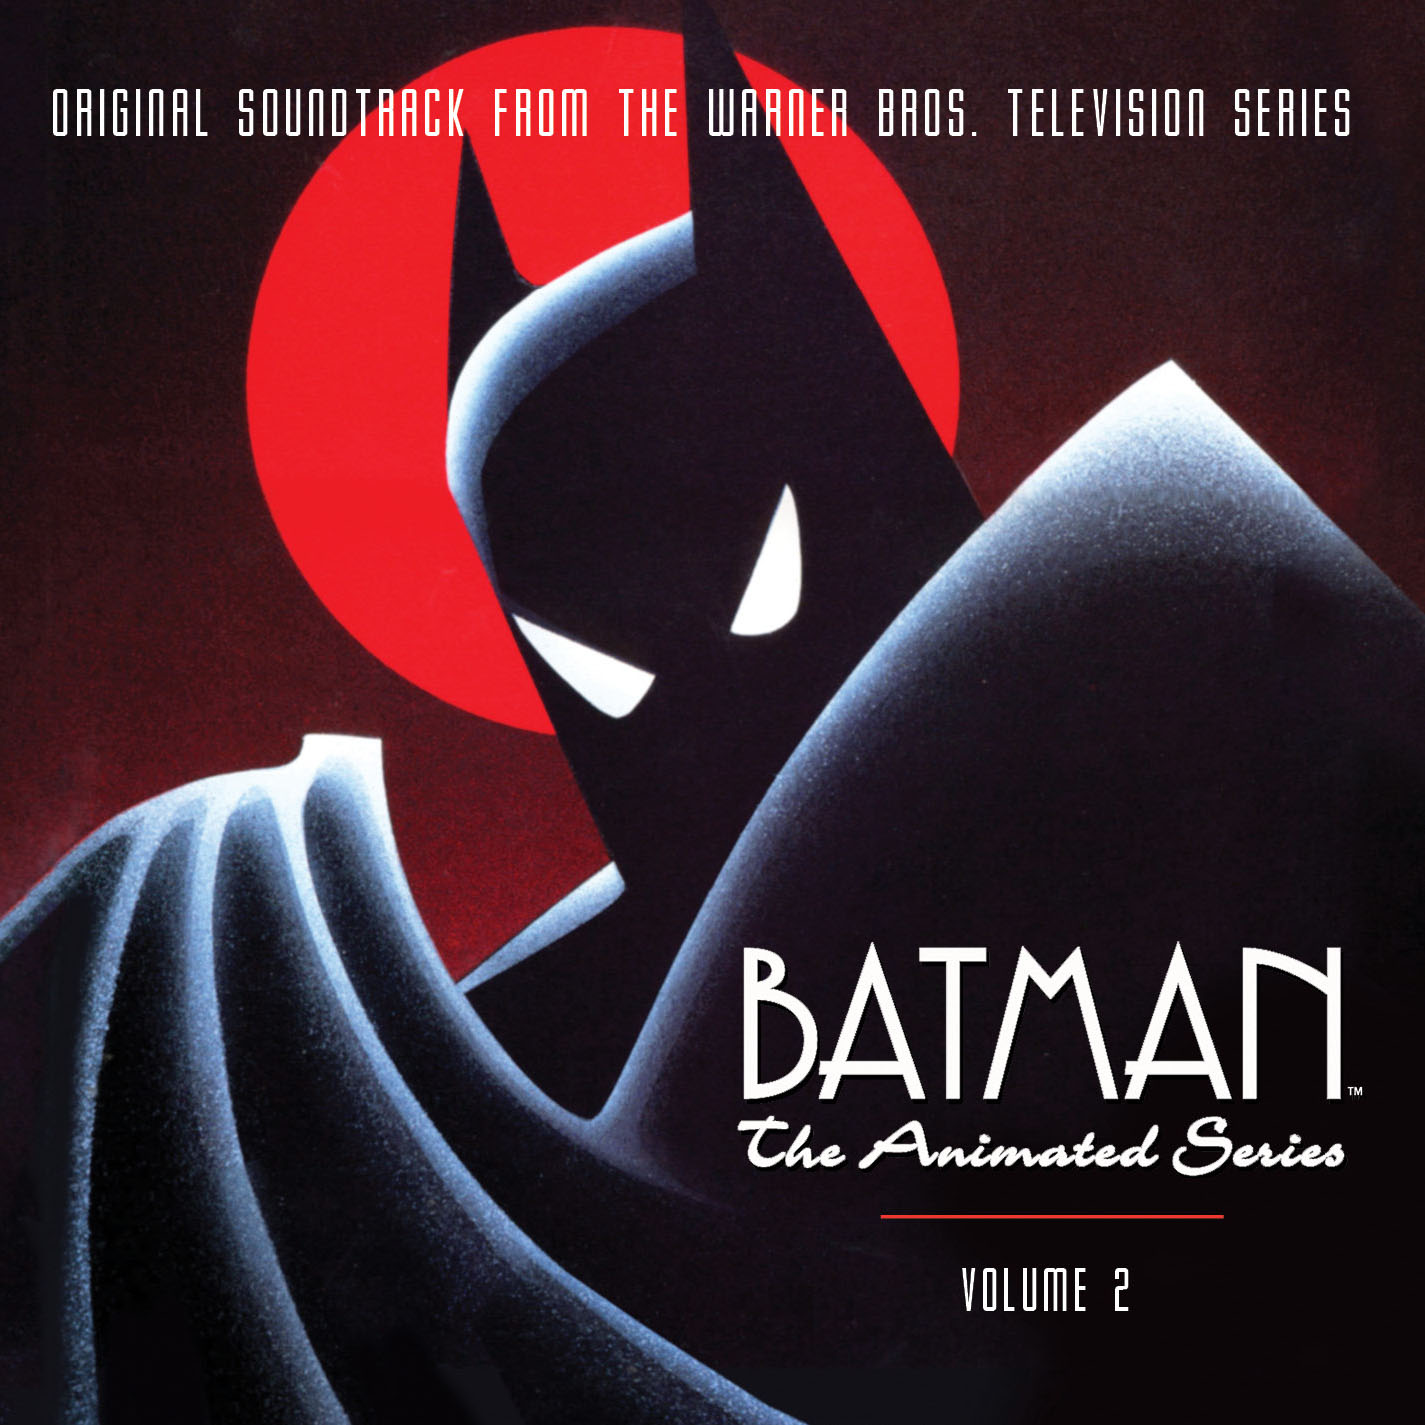 BATMAN THE ANIMATED SERIES VOL. 2 (4-CD SET)